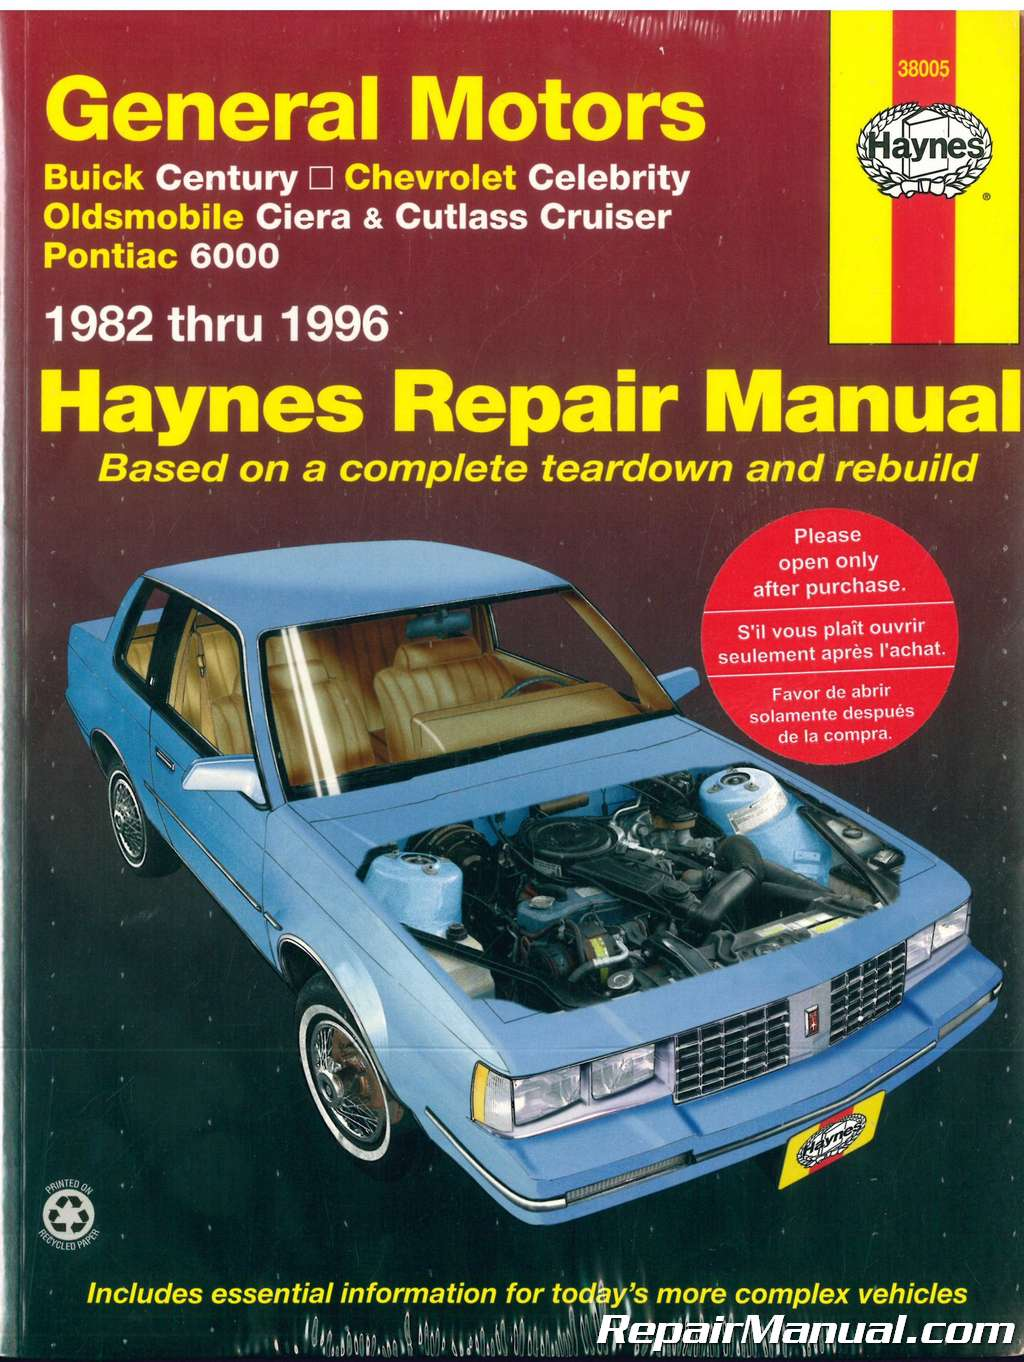 GM Buick Century Chevrolet Celebrity Oldsmobile Ciera Cutlass Cruiser  Pontiac 6000 1982-1996 Haynes Repair Manual